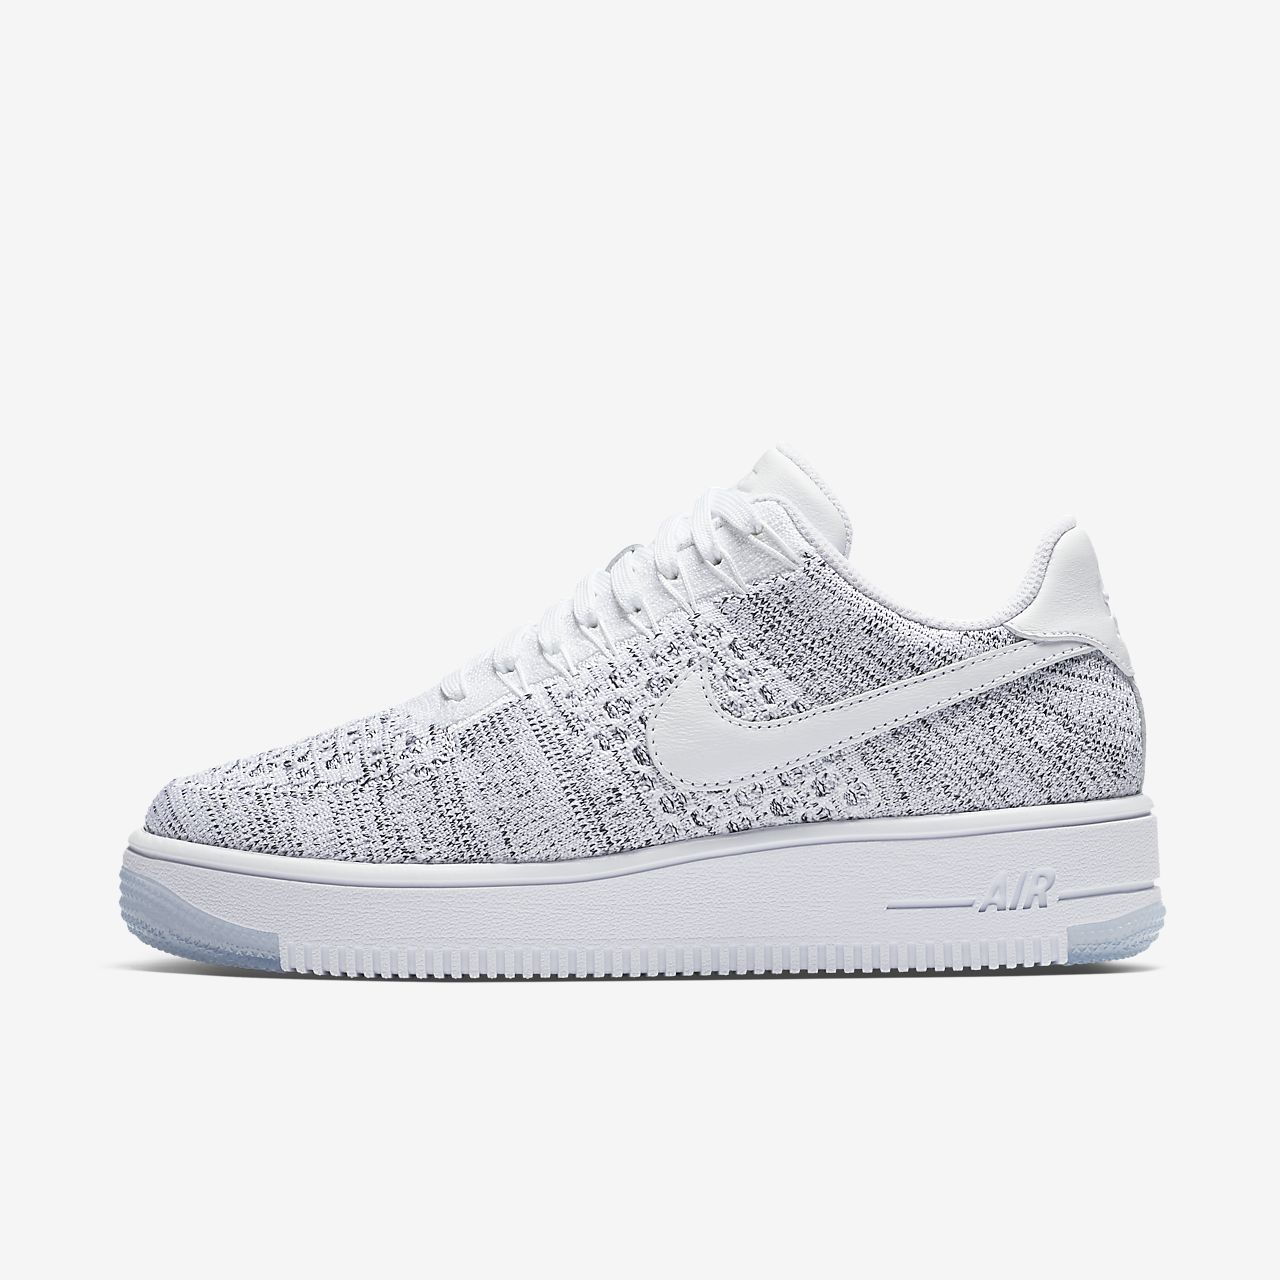 nike air force 1 new zealand 10 nz